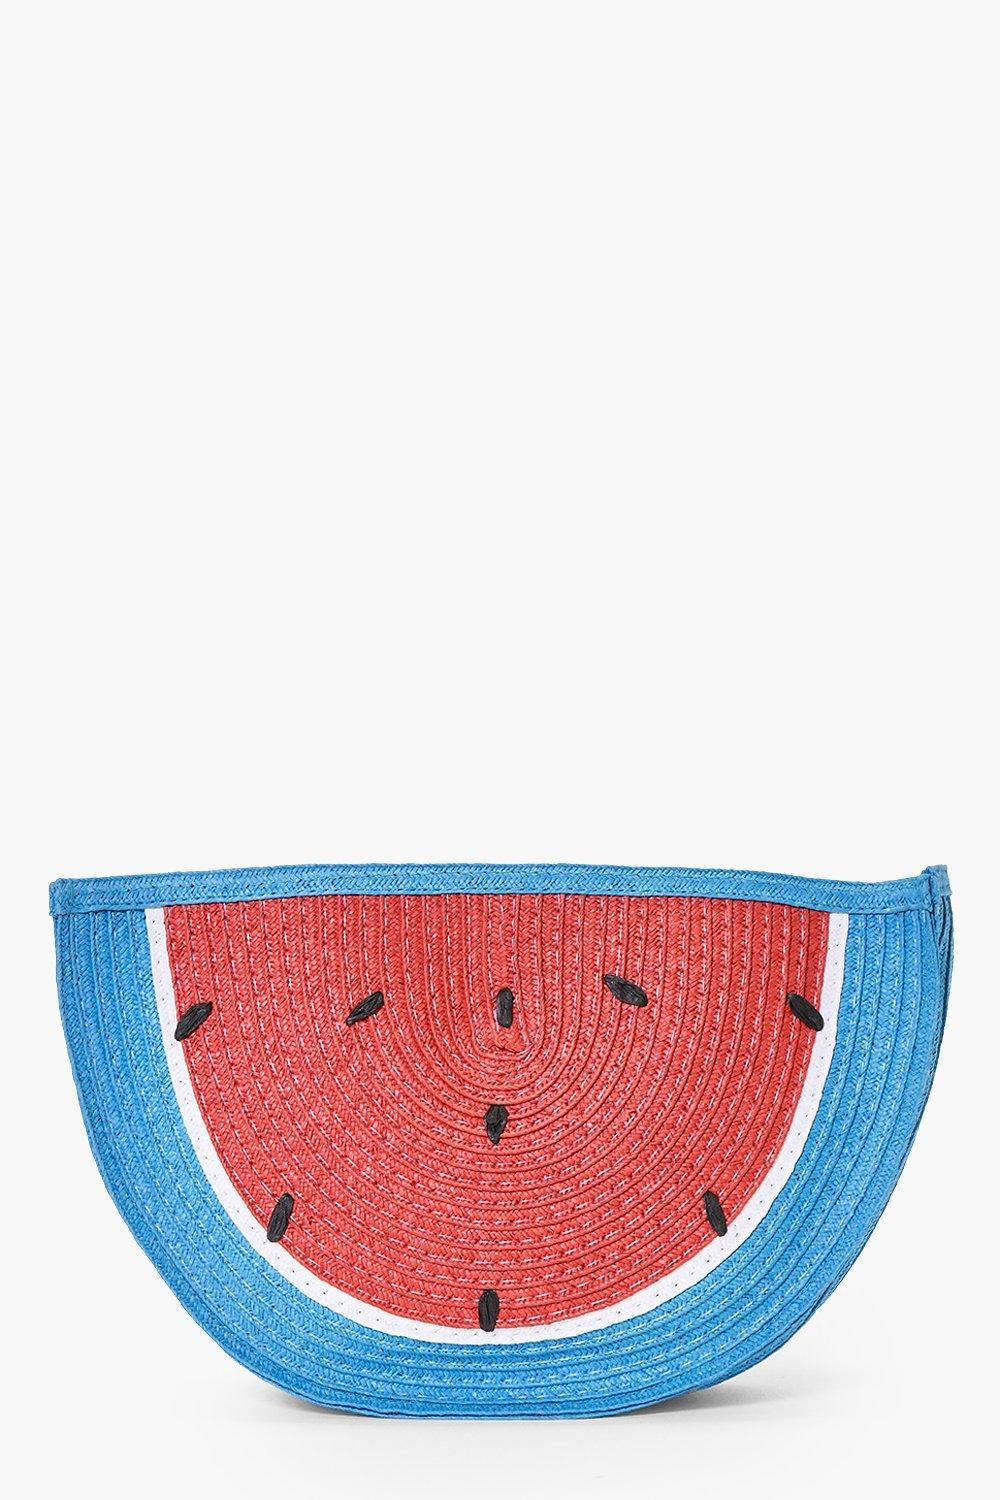 Watermelon Straw Clutch Bag Multi - secondary colour: true red; predominant colour: diva blue; occasions: evening, occasion; type of pattern: large; style: clutch; length: hand carry; size: small; material: fabric; finish: plain; pattern: patterned/print; multicoloured: multicoloured; season: s/s 2016; wardrobe: event